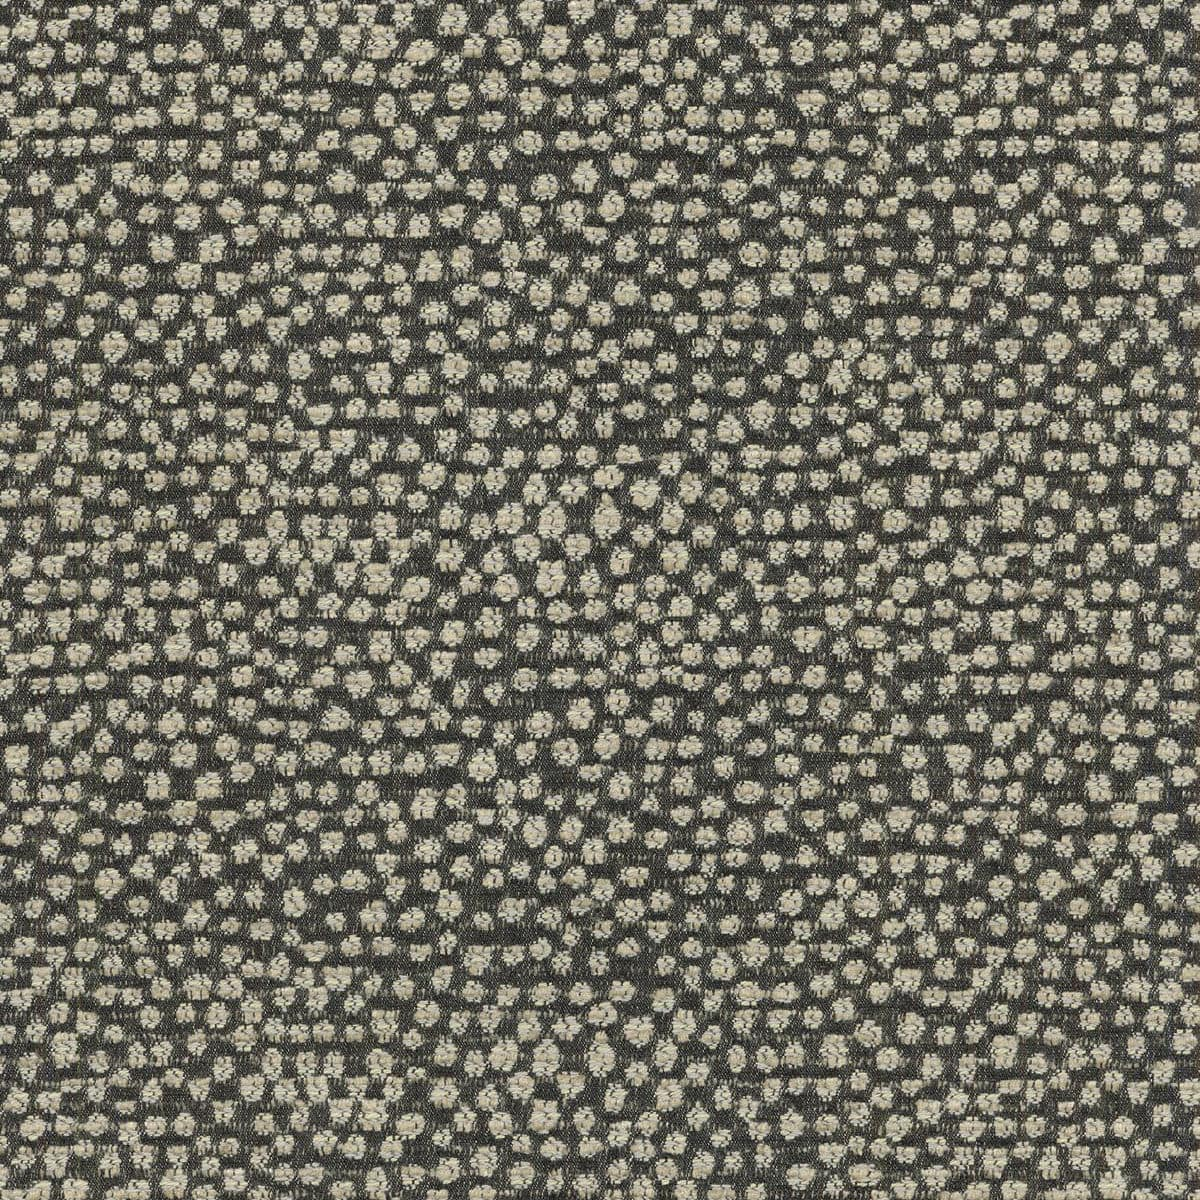 Upholstery Fabric Pebble Nightfall Waverly Div Of Schumacher Co Patterned Polyester Cotton